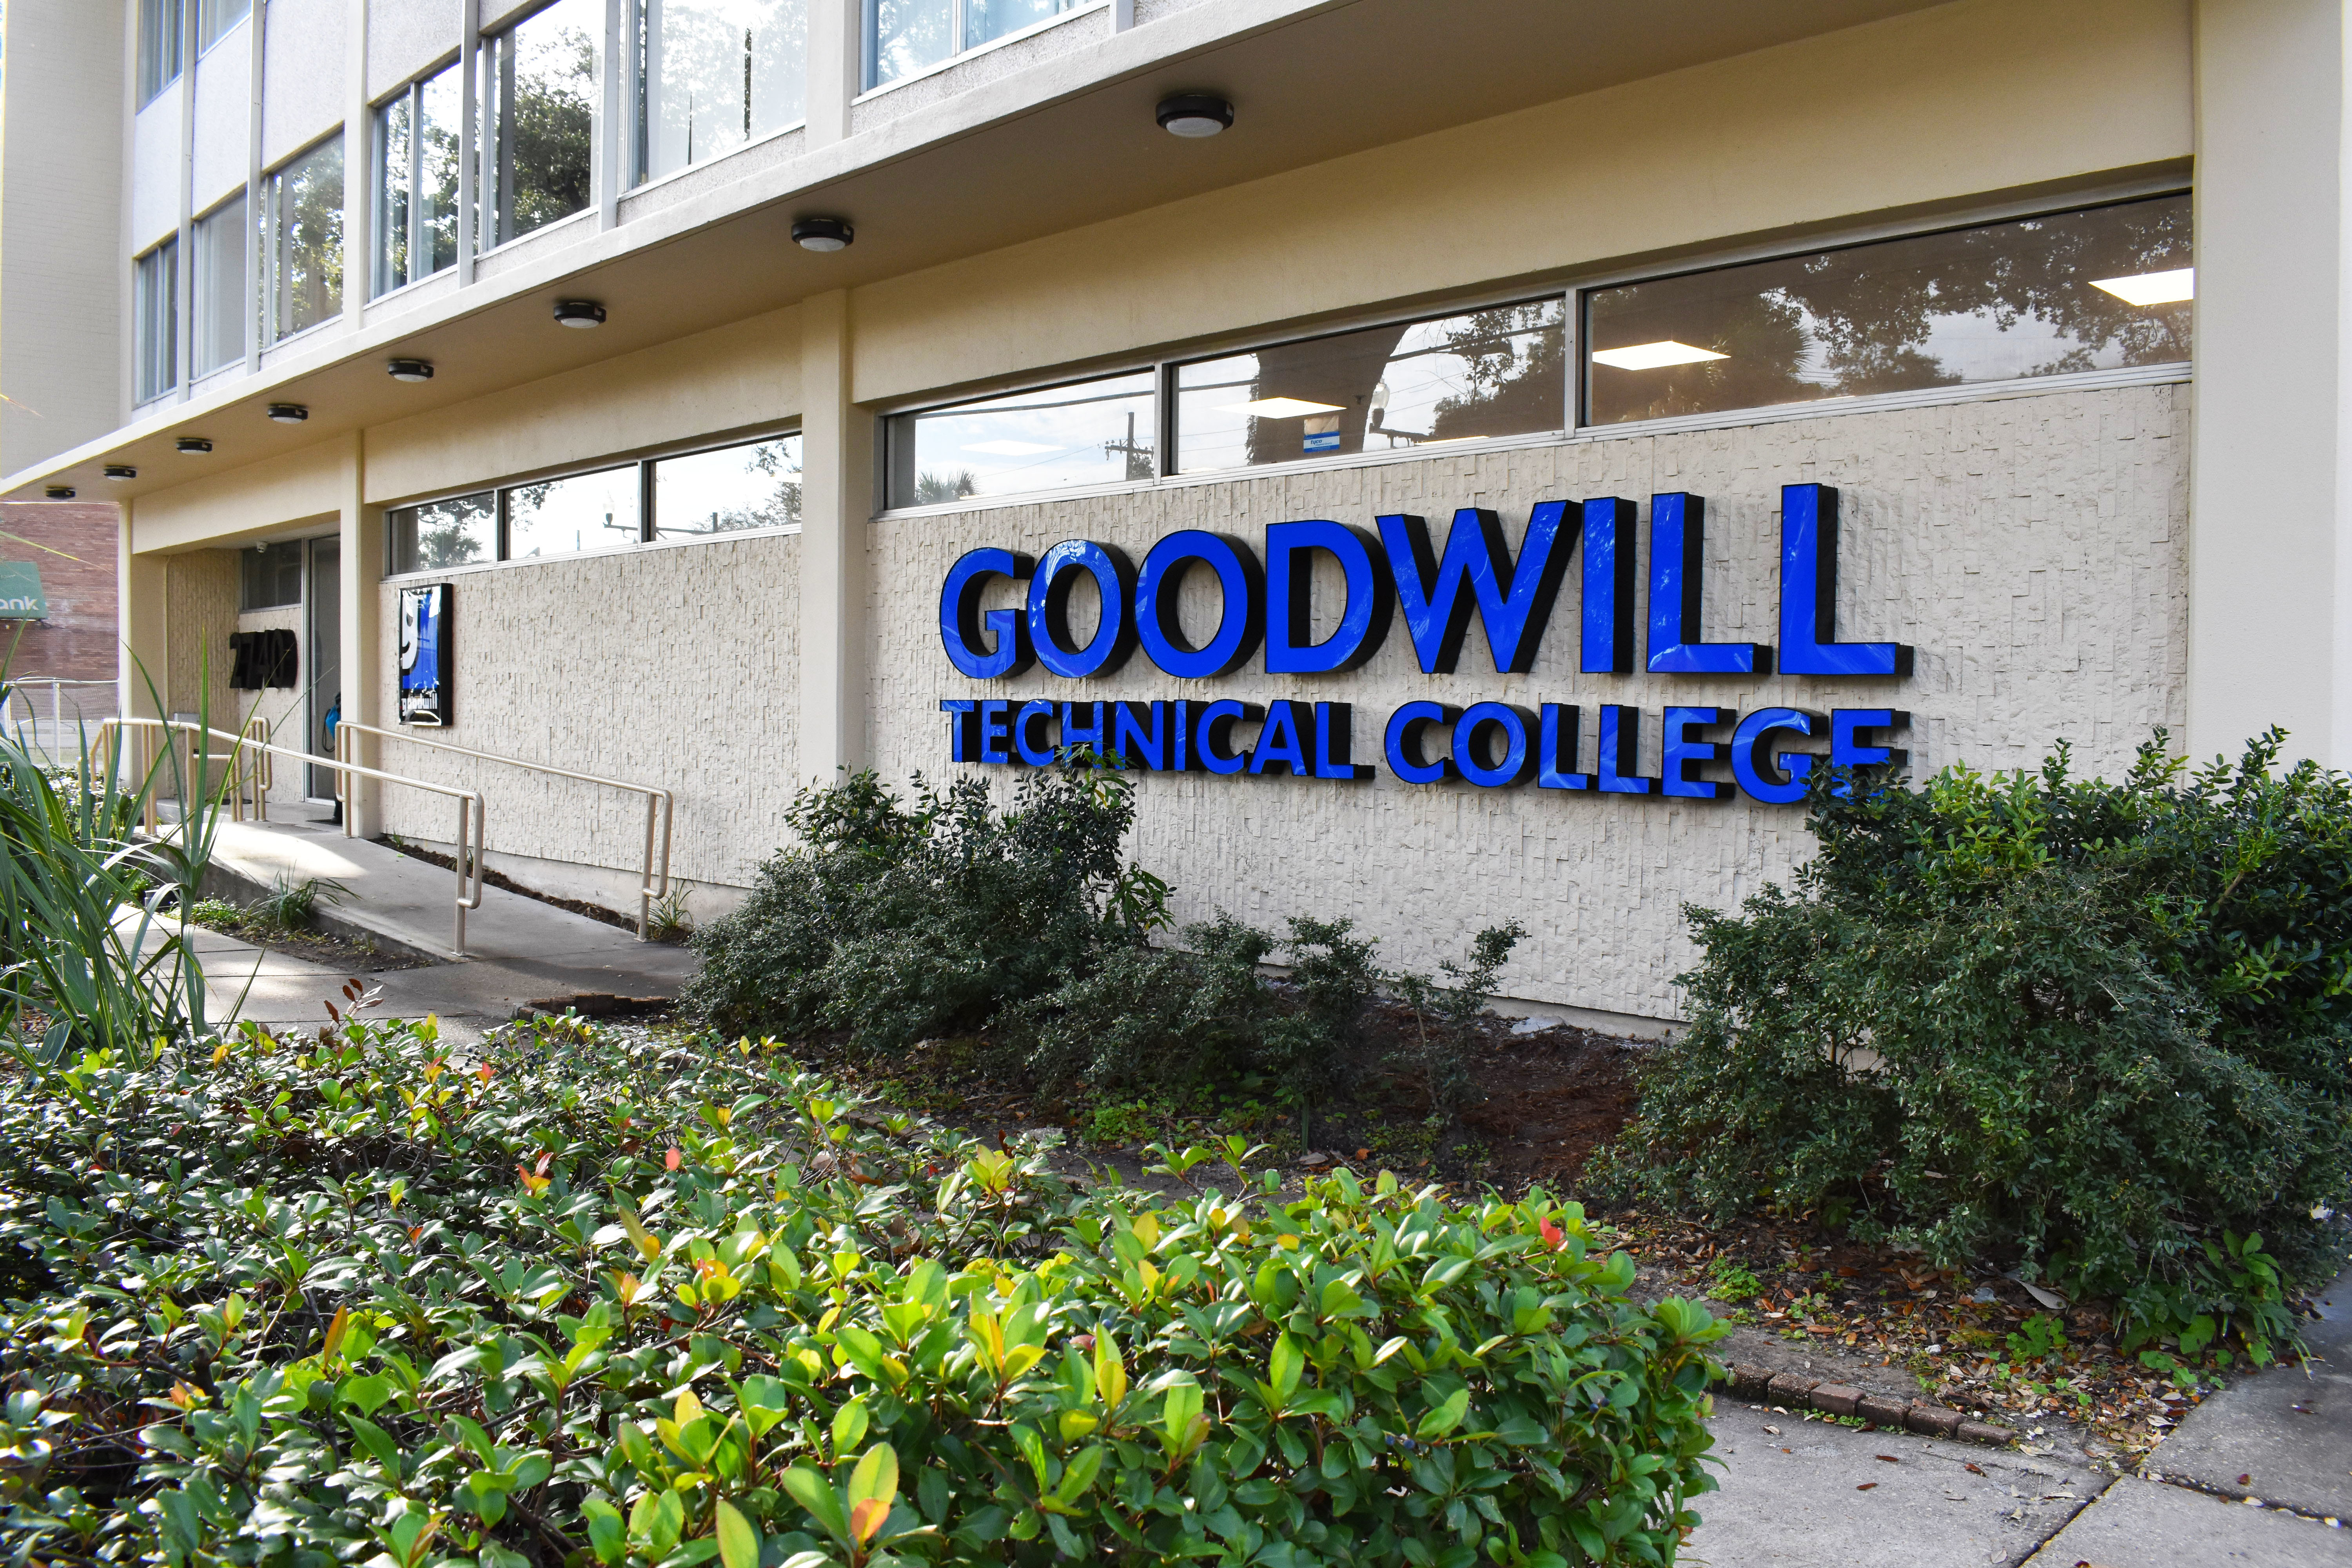 Goodwill Technical College Goodwill Of Southeastern Louisiana